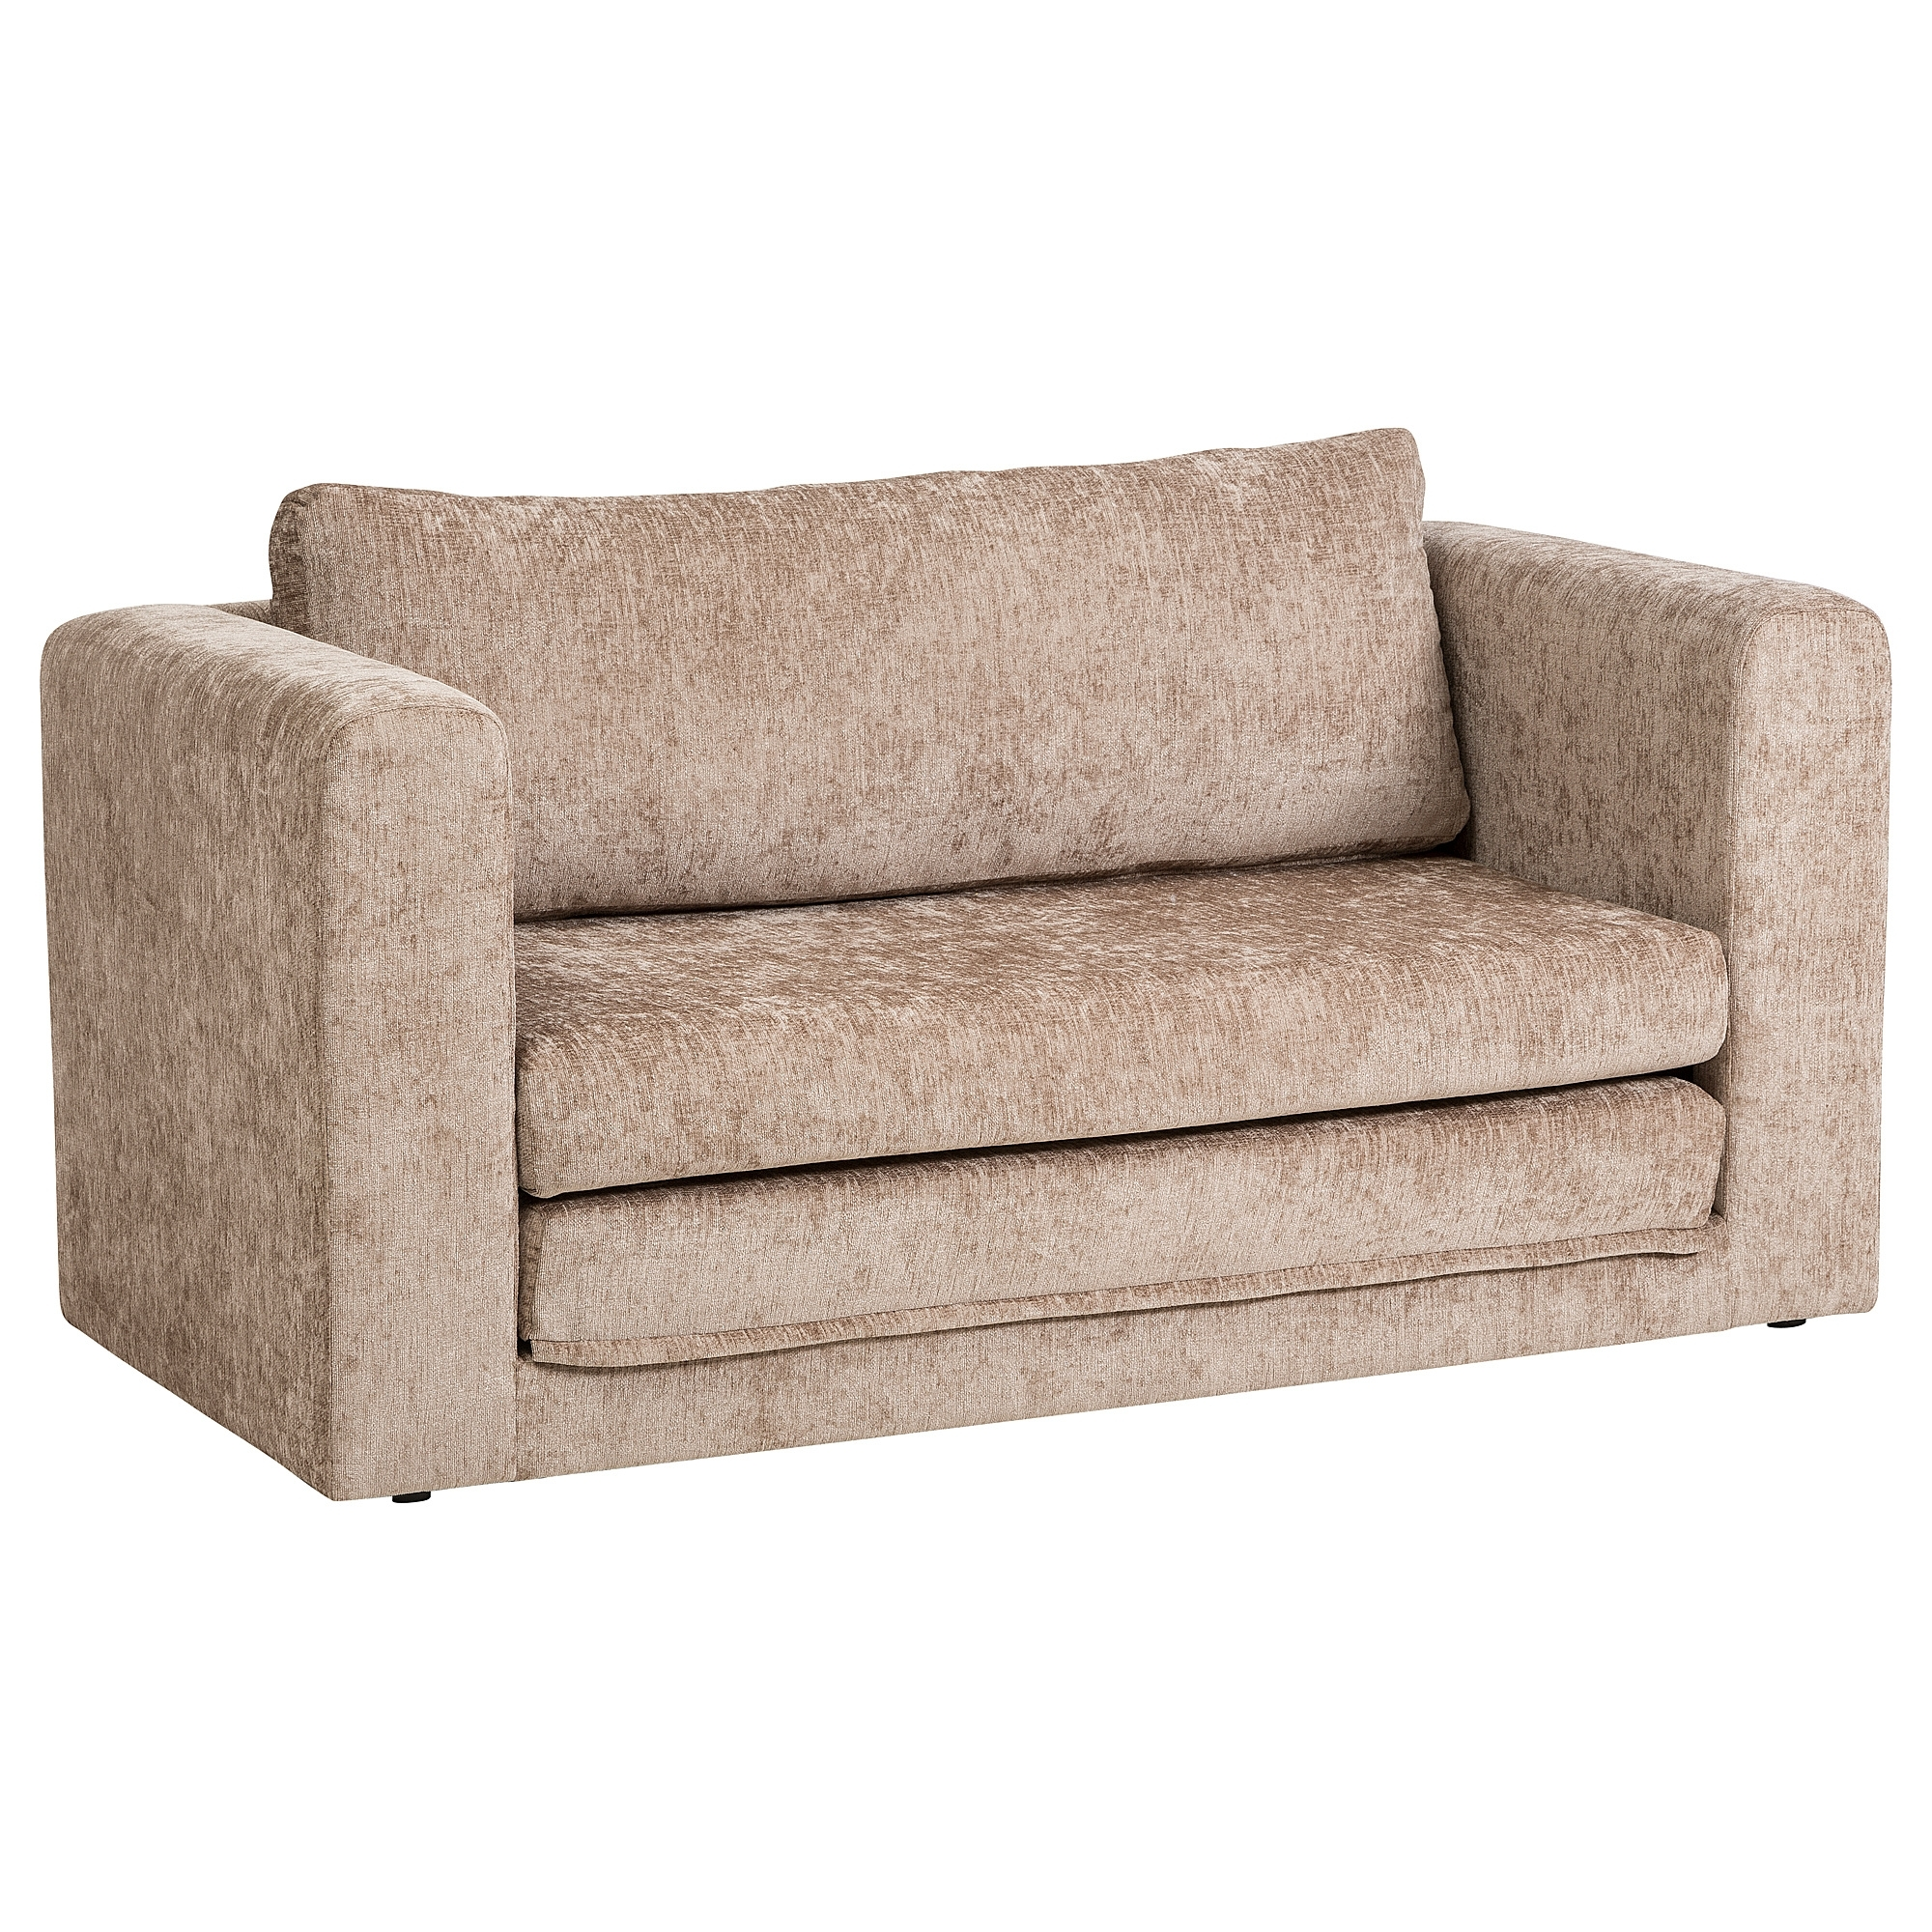 Favorite Askeby 2 Seat Sofa Bed Beige – Ikea Pertaining To Ikea Two Seater Sofas (View 5 of 20)